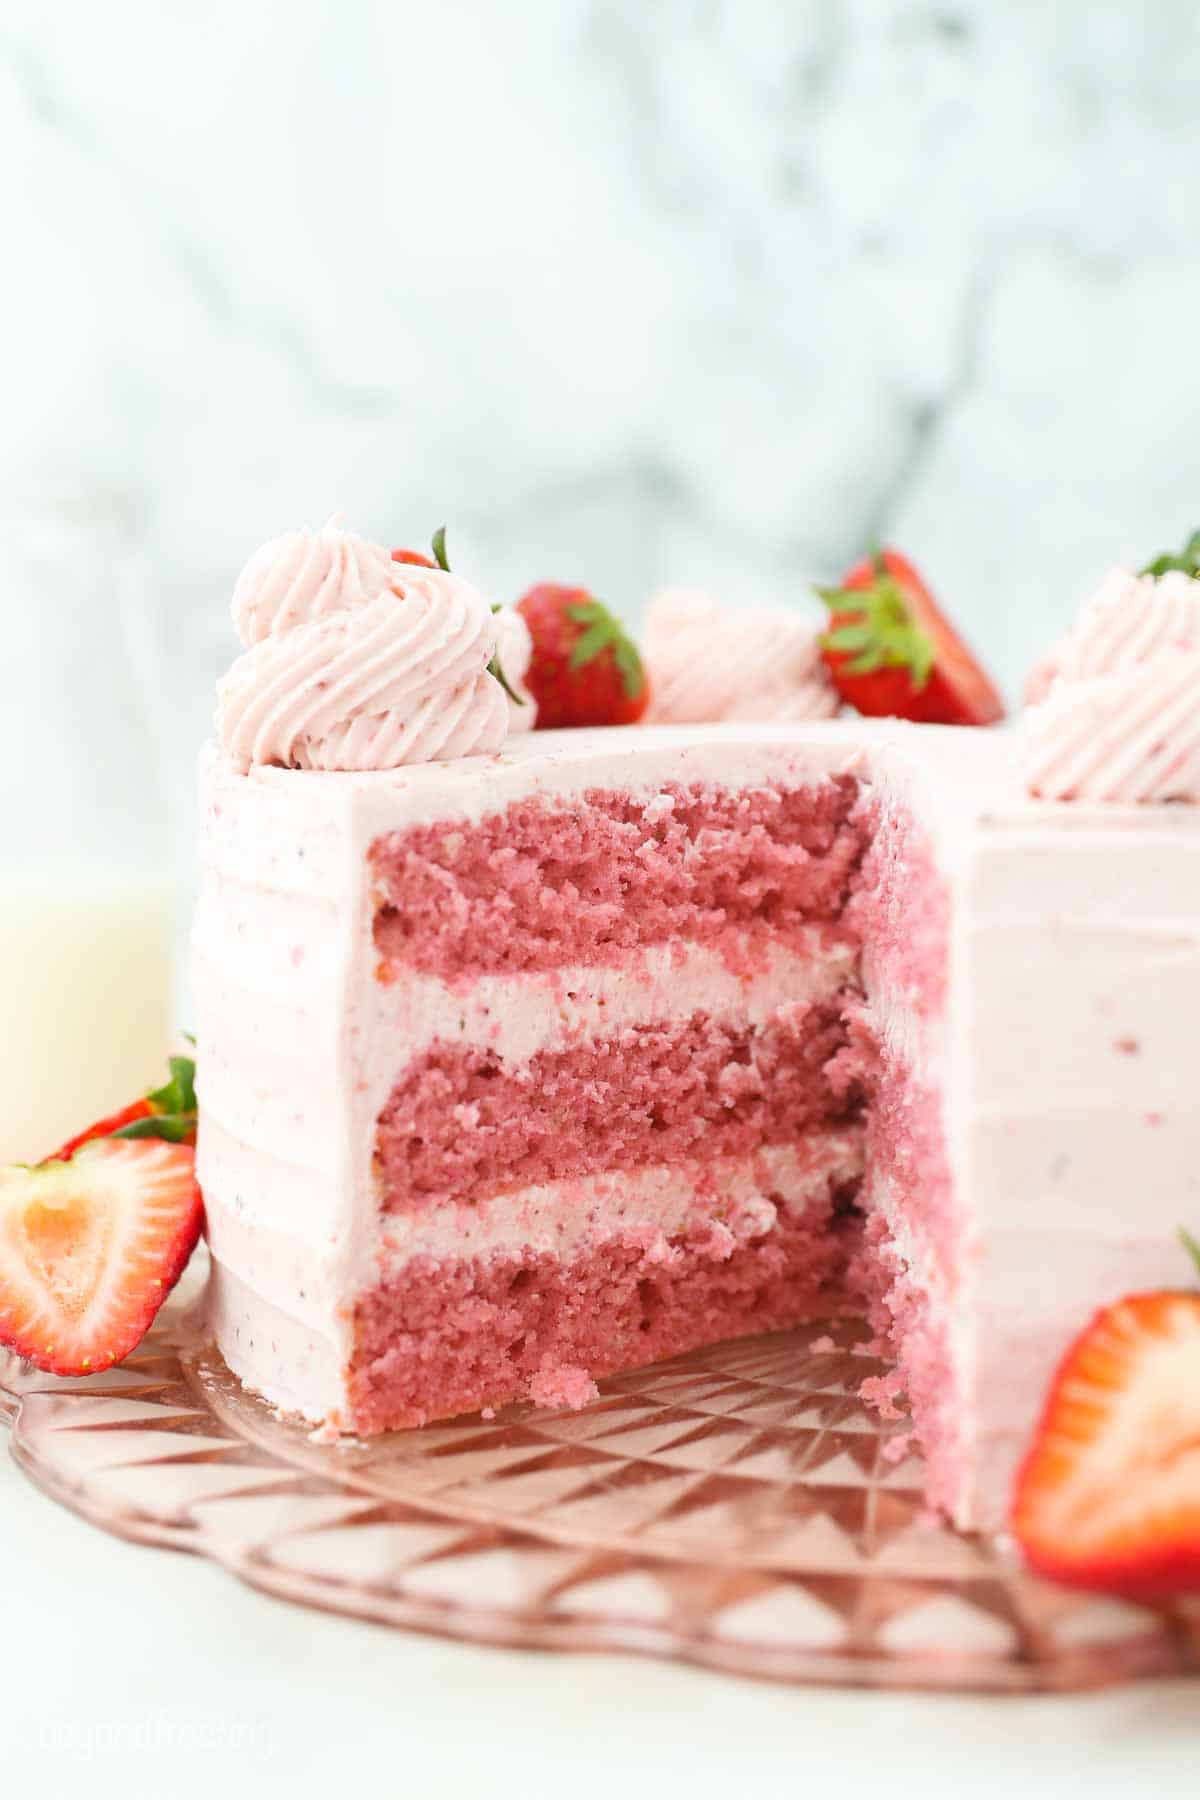 A Strawberry Cake with Strawberry Frosting and decorated with strawberries.